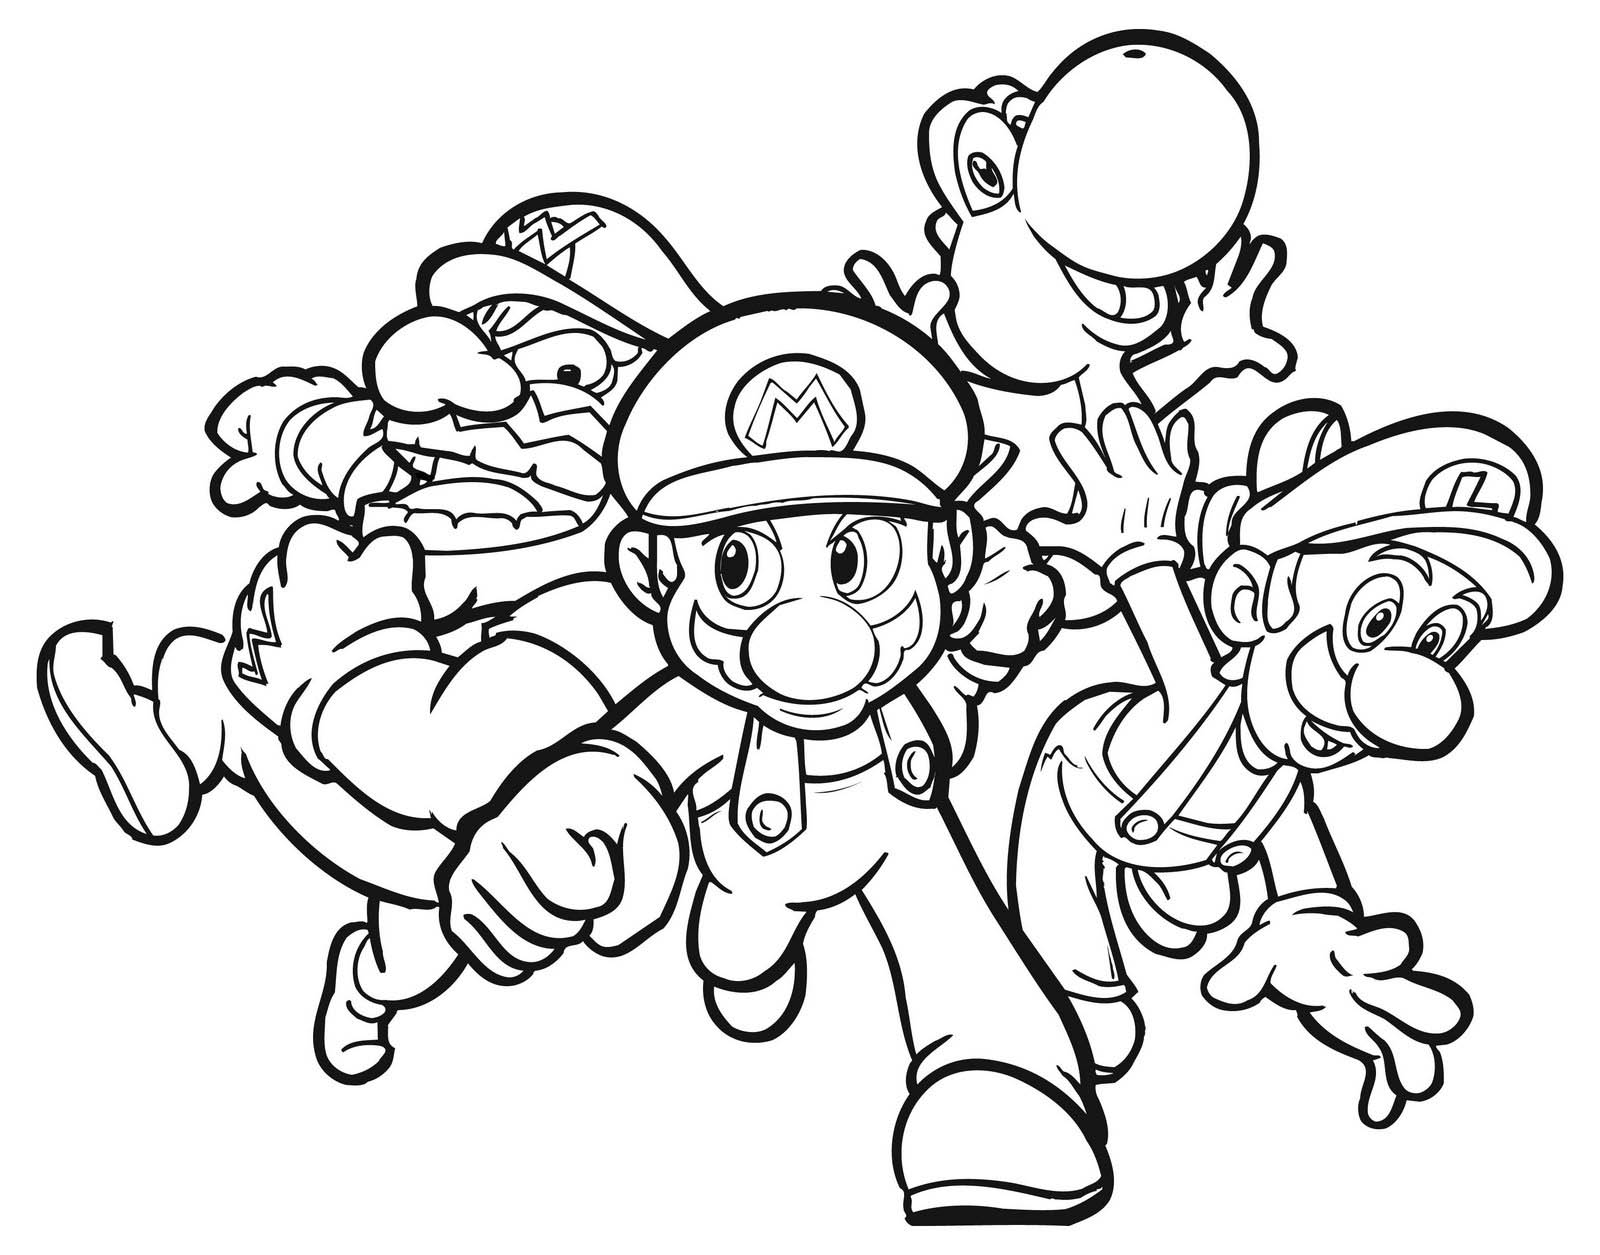 Mario Coloring Pages Free Printable Pictures Coloring Mario Luigi Coloring Pages